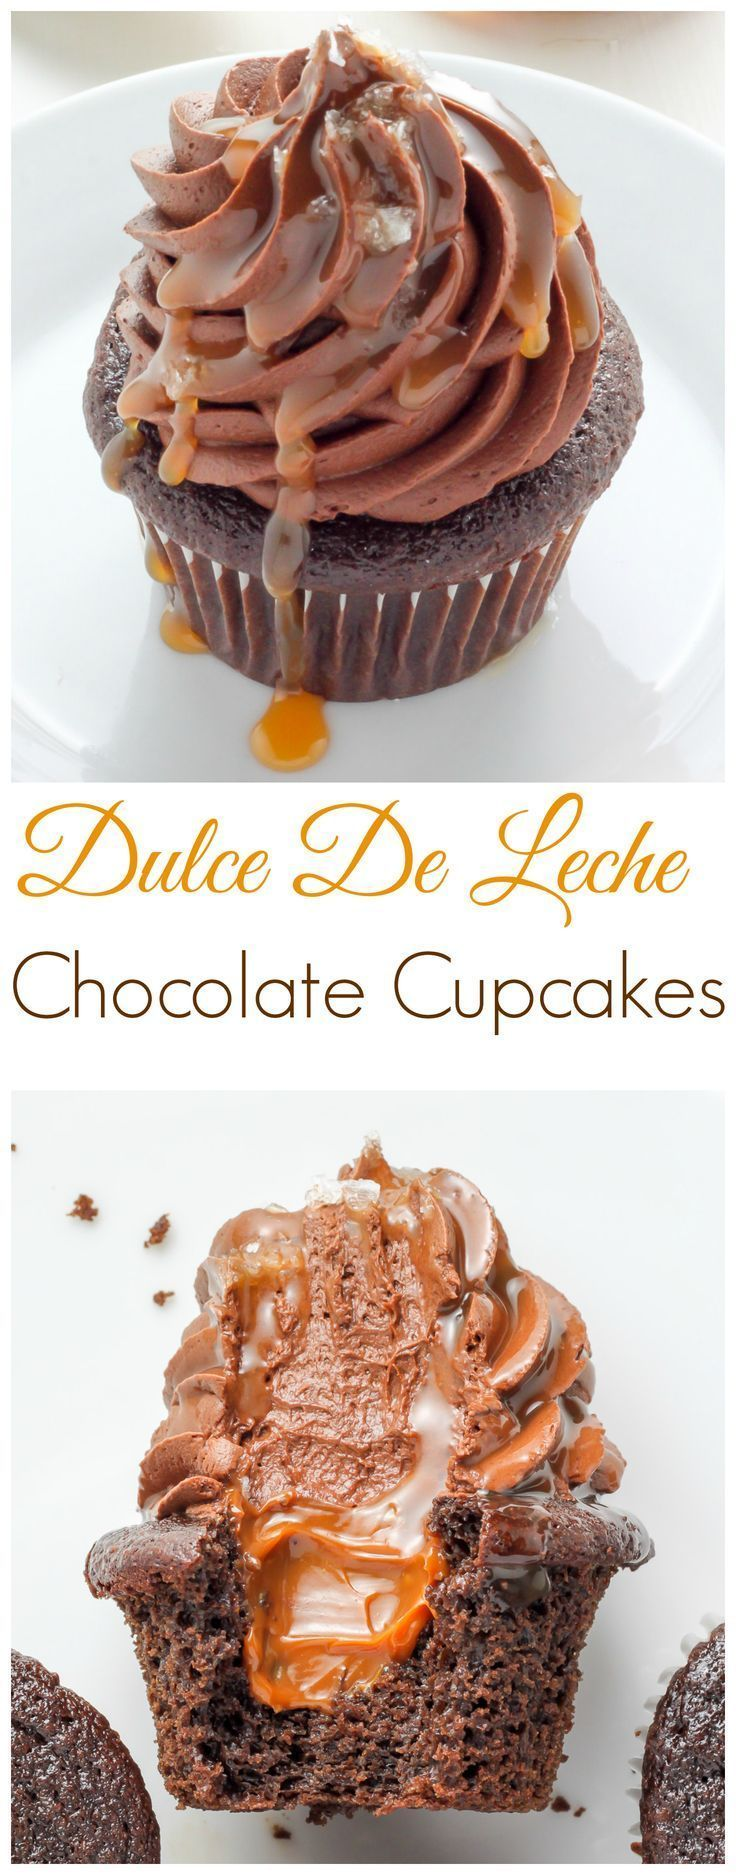 What's better than a batch of chocolate cupcakes...?! A batch of Dulce De Leche Chocolate Cupcakes! This SUPER decadent recipe is sure to become a new favorite.